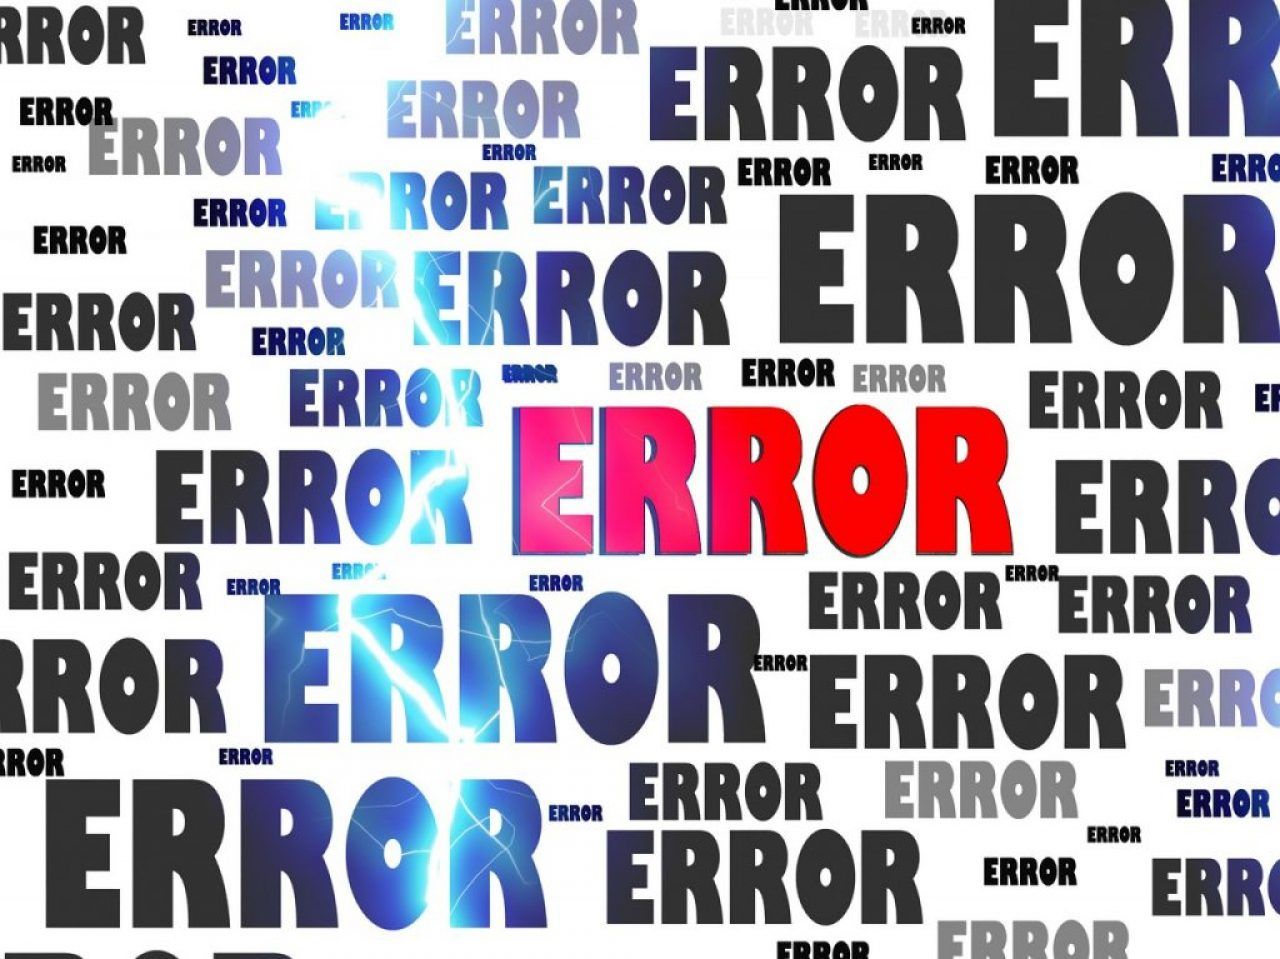 Errors and Bug Fixes